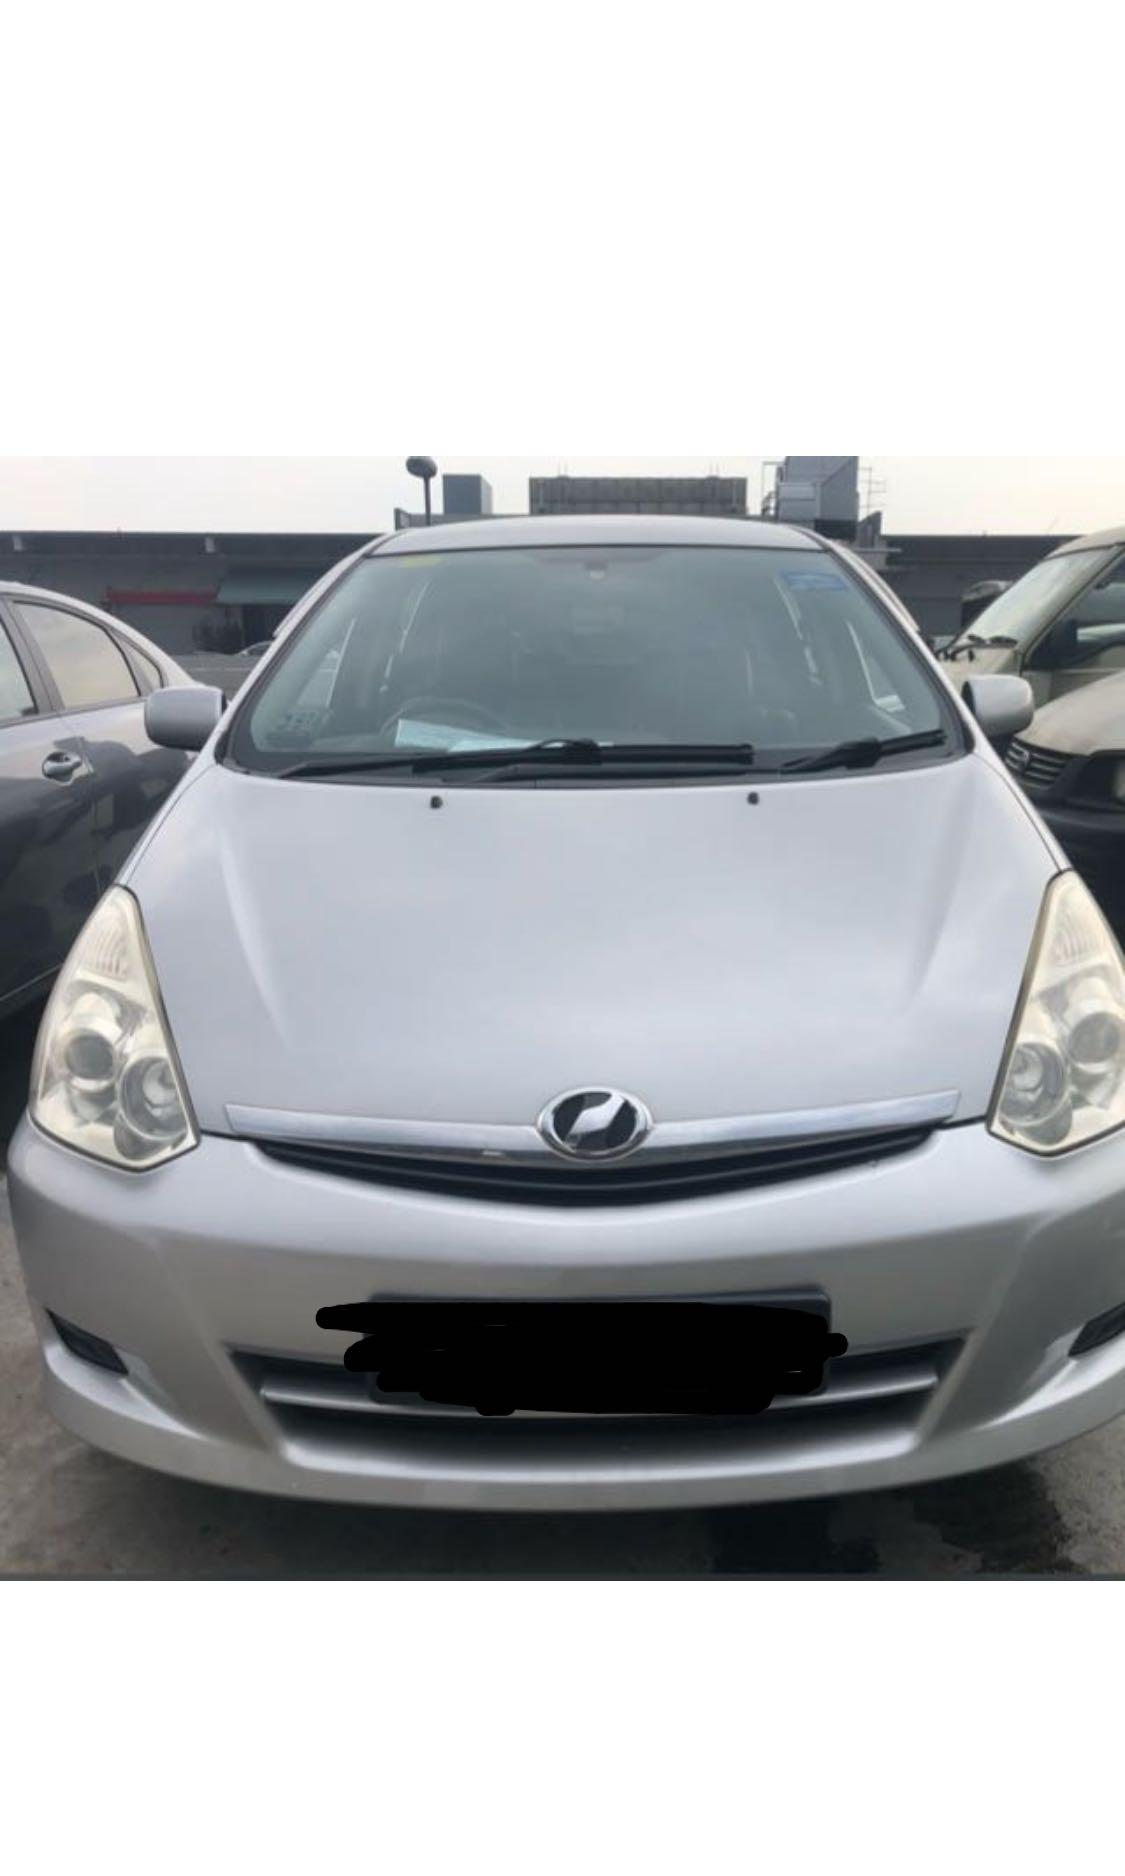 Toyota Wish for Rent (PDVL/Go-Jek/Grab/Personel) Car for rent